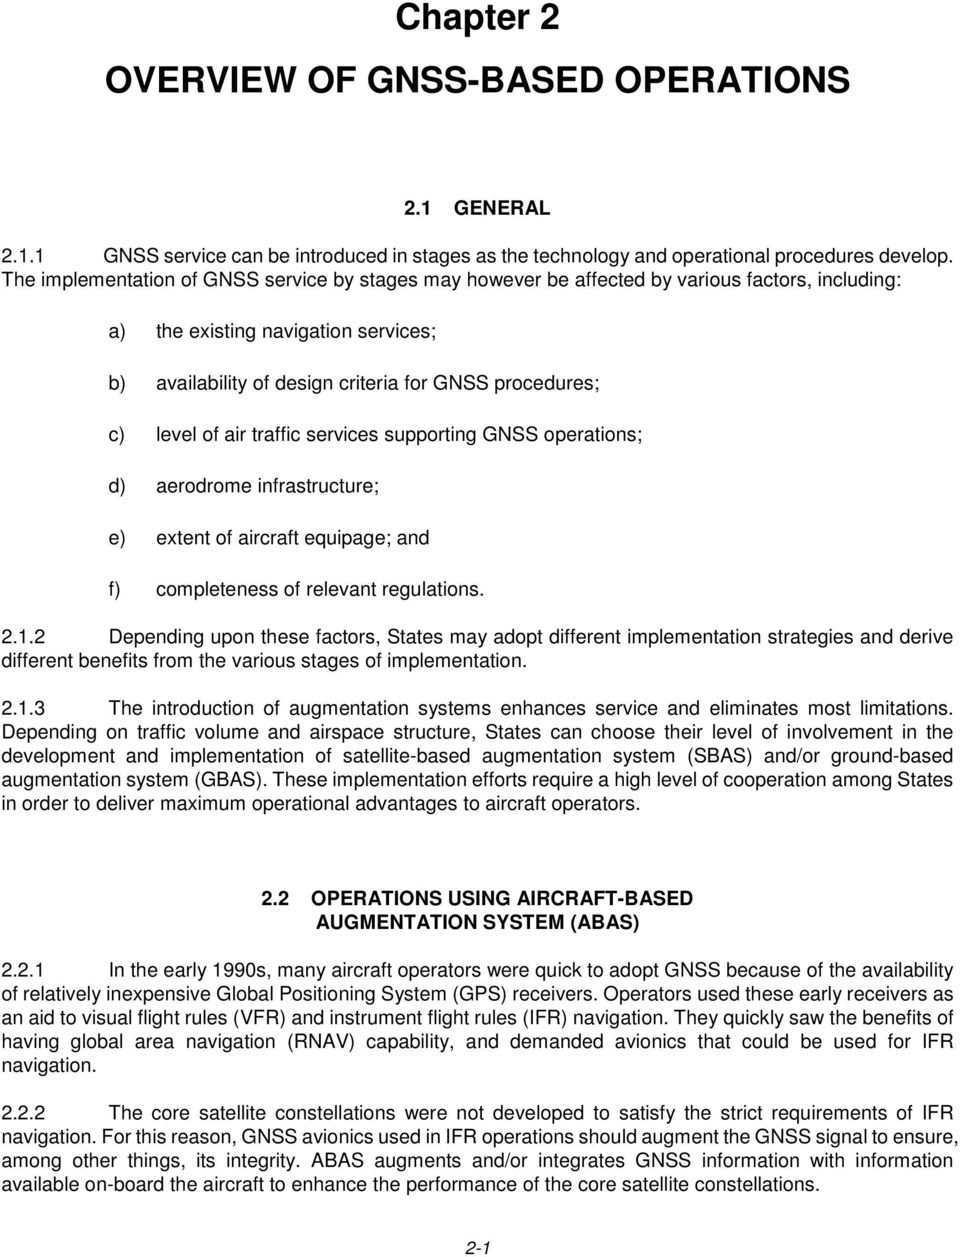 Doc 9849 AN/457  Approved by the Secretary General and published